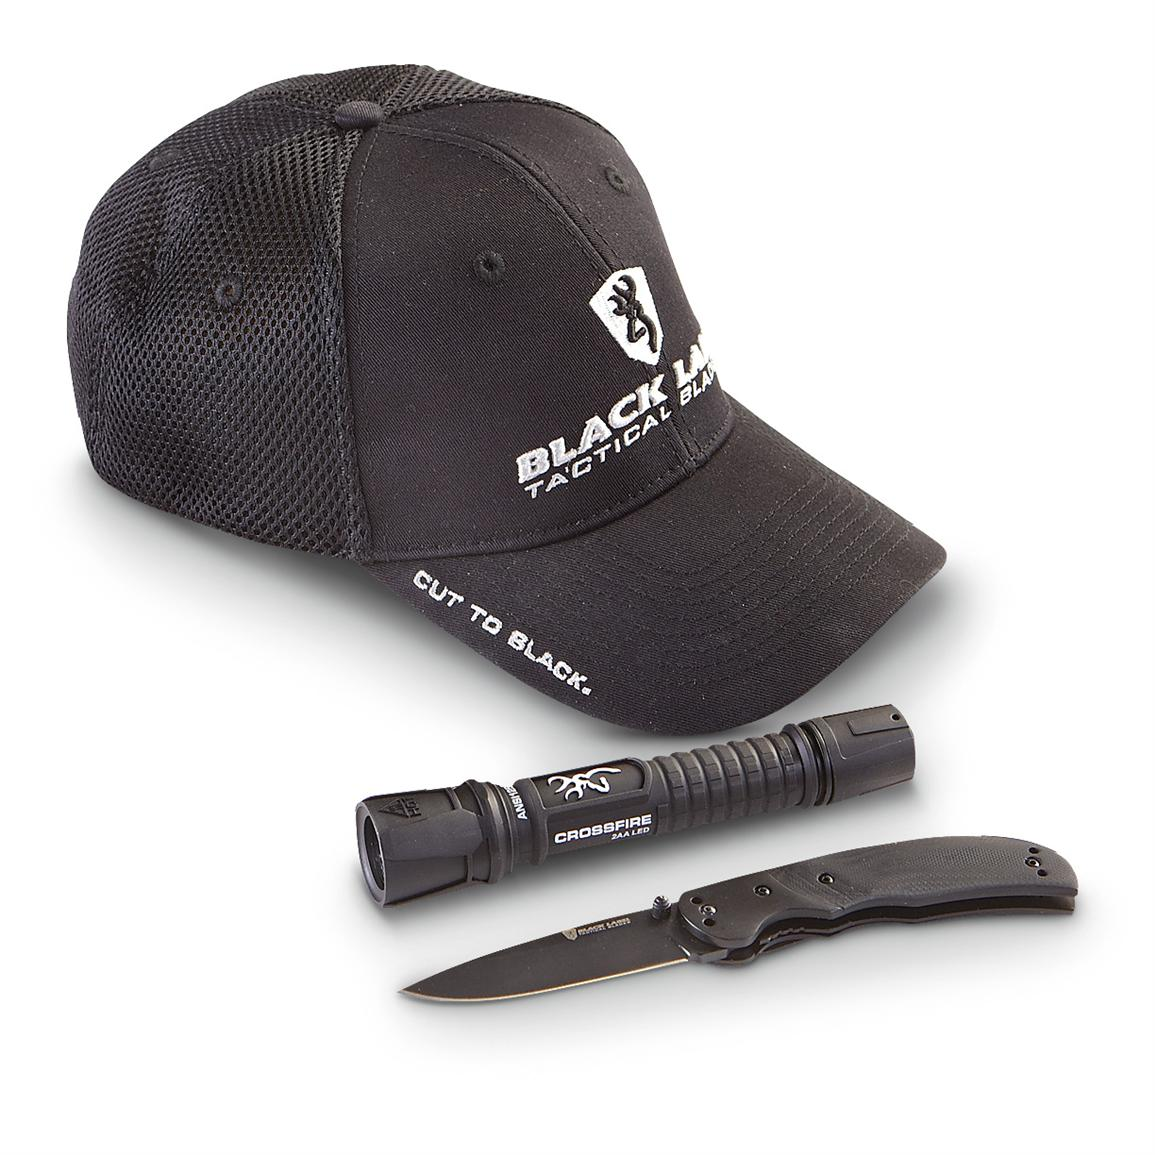 Browning® Cut to Black Knife / Light / Cap Combo